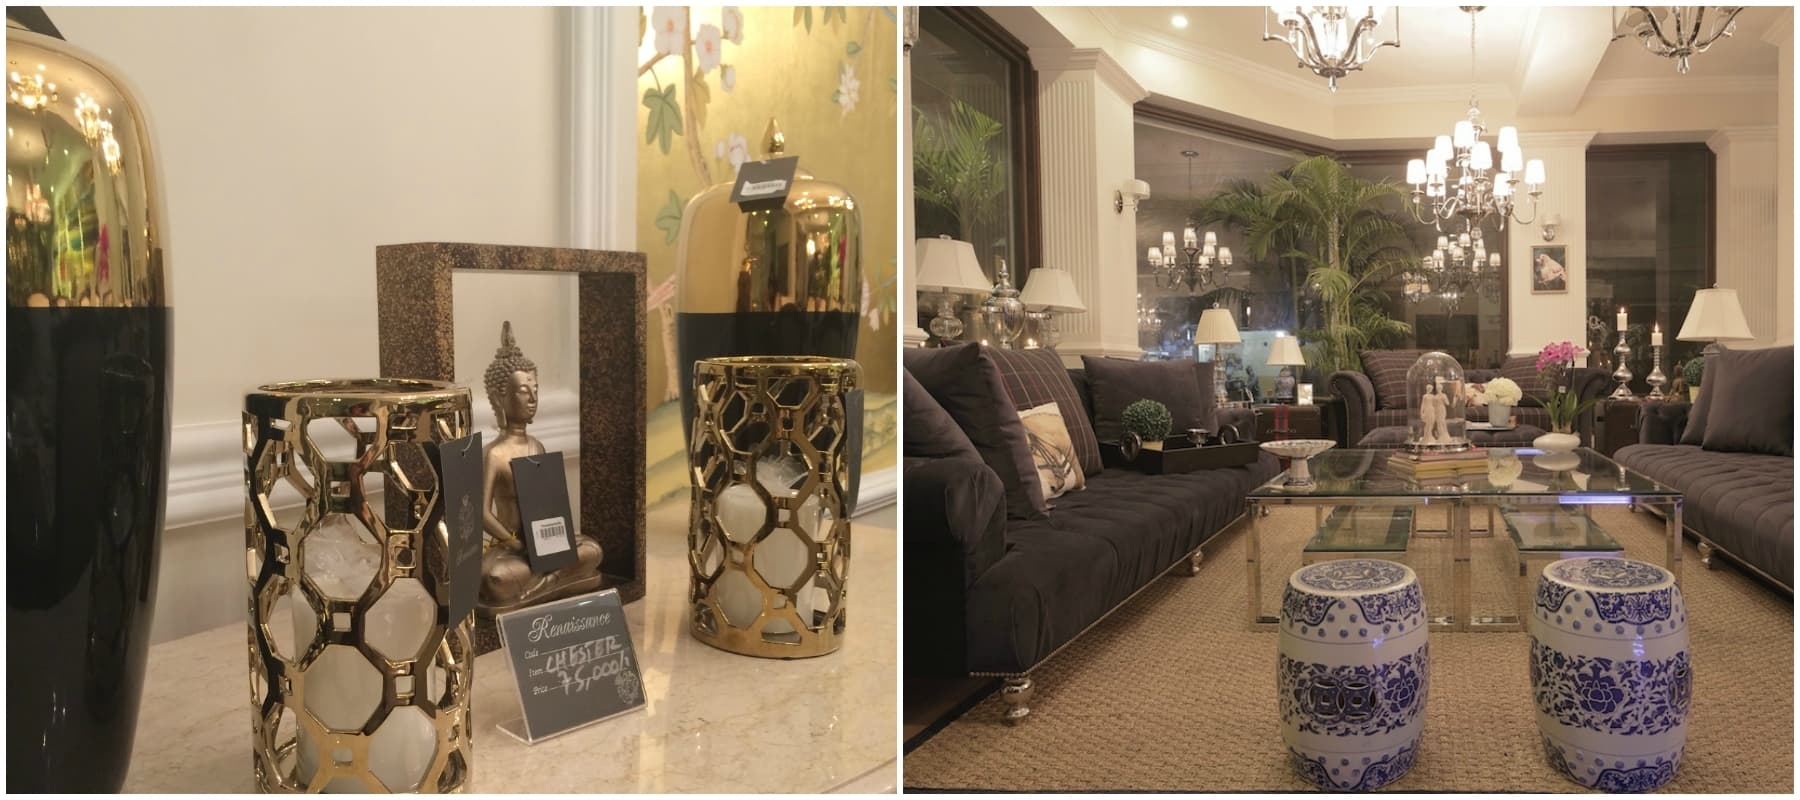 Top picks for home decor these 10 stores get interiors right pakistan dawn com - Home design e decor shopping ...